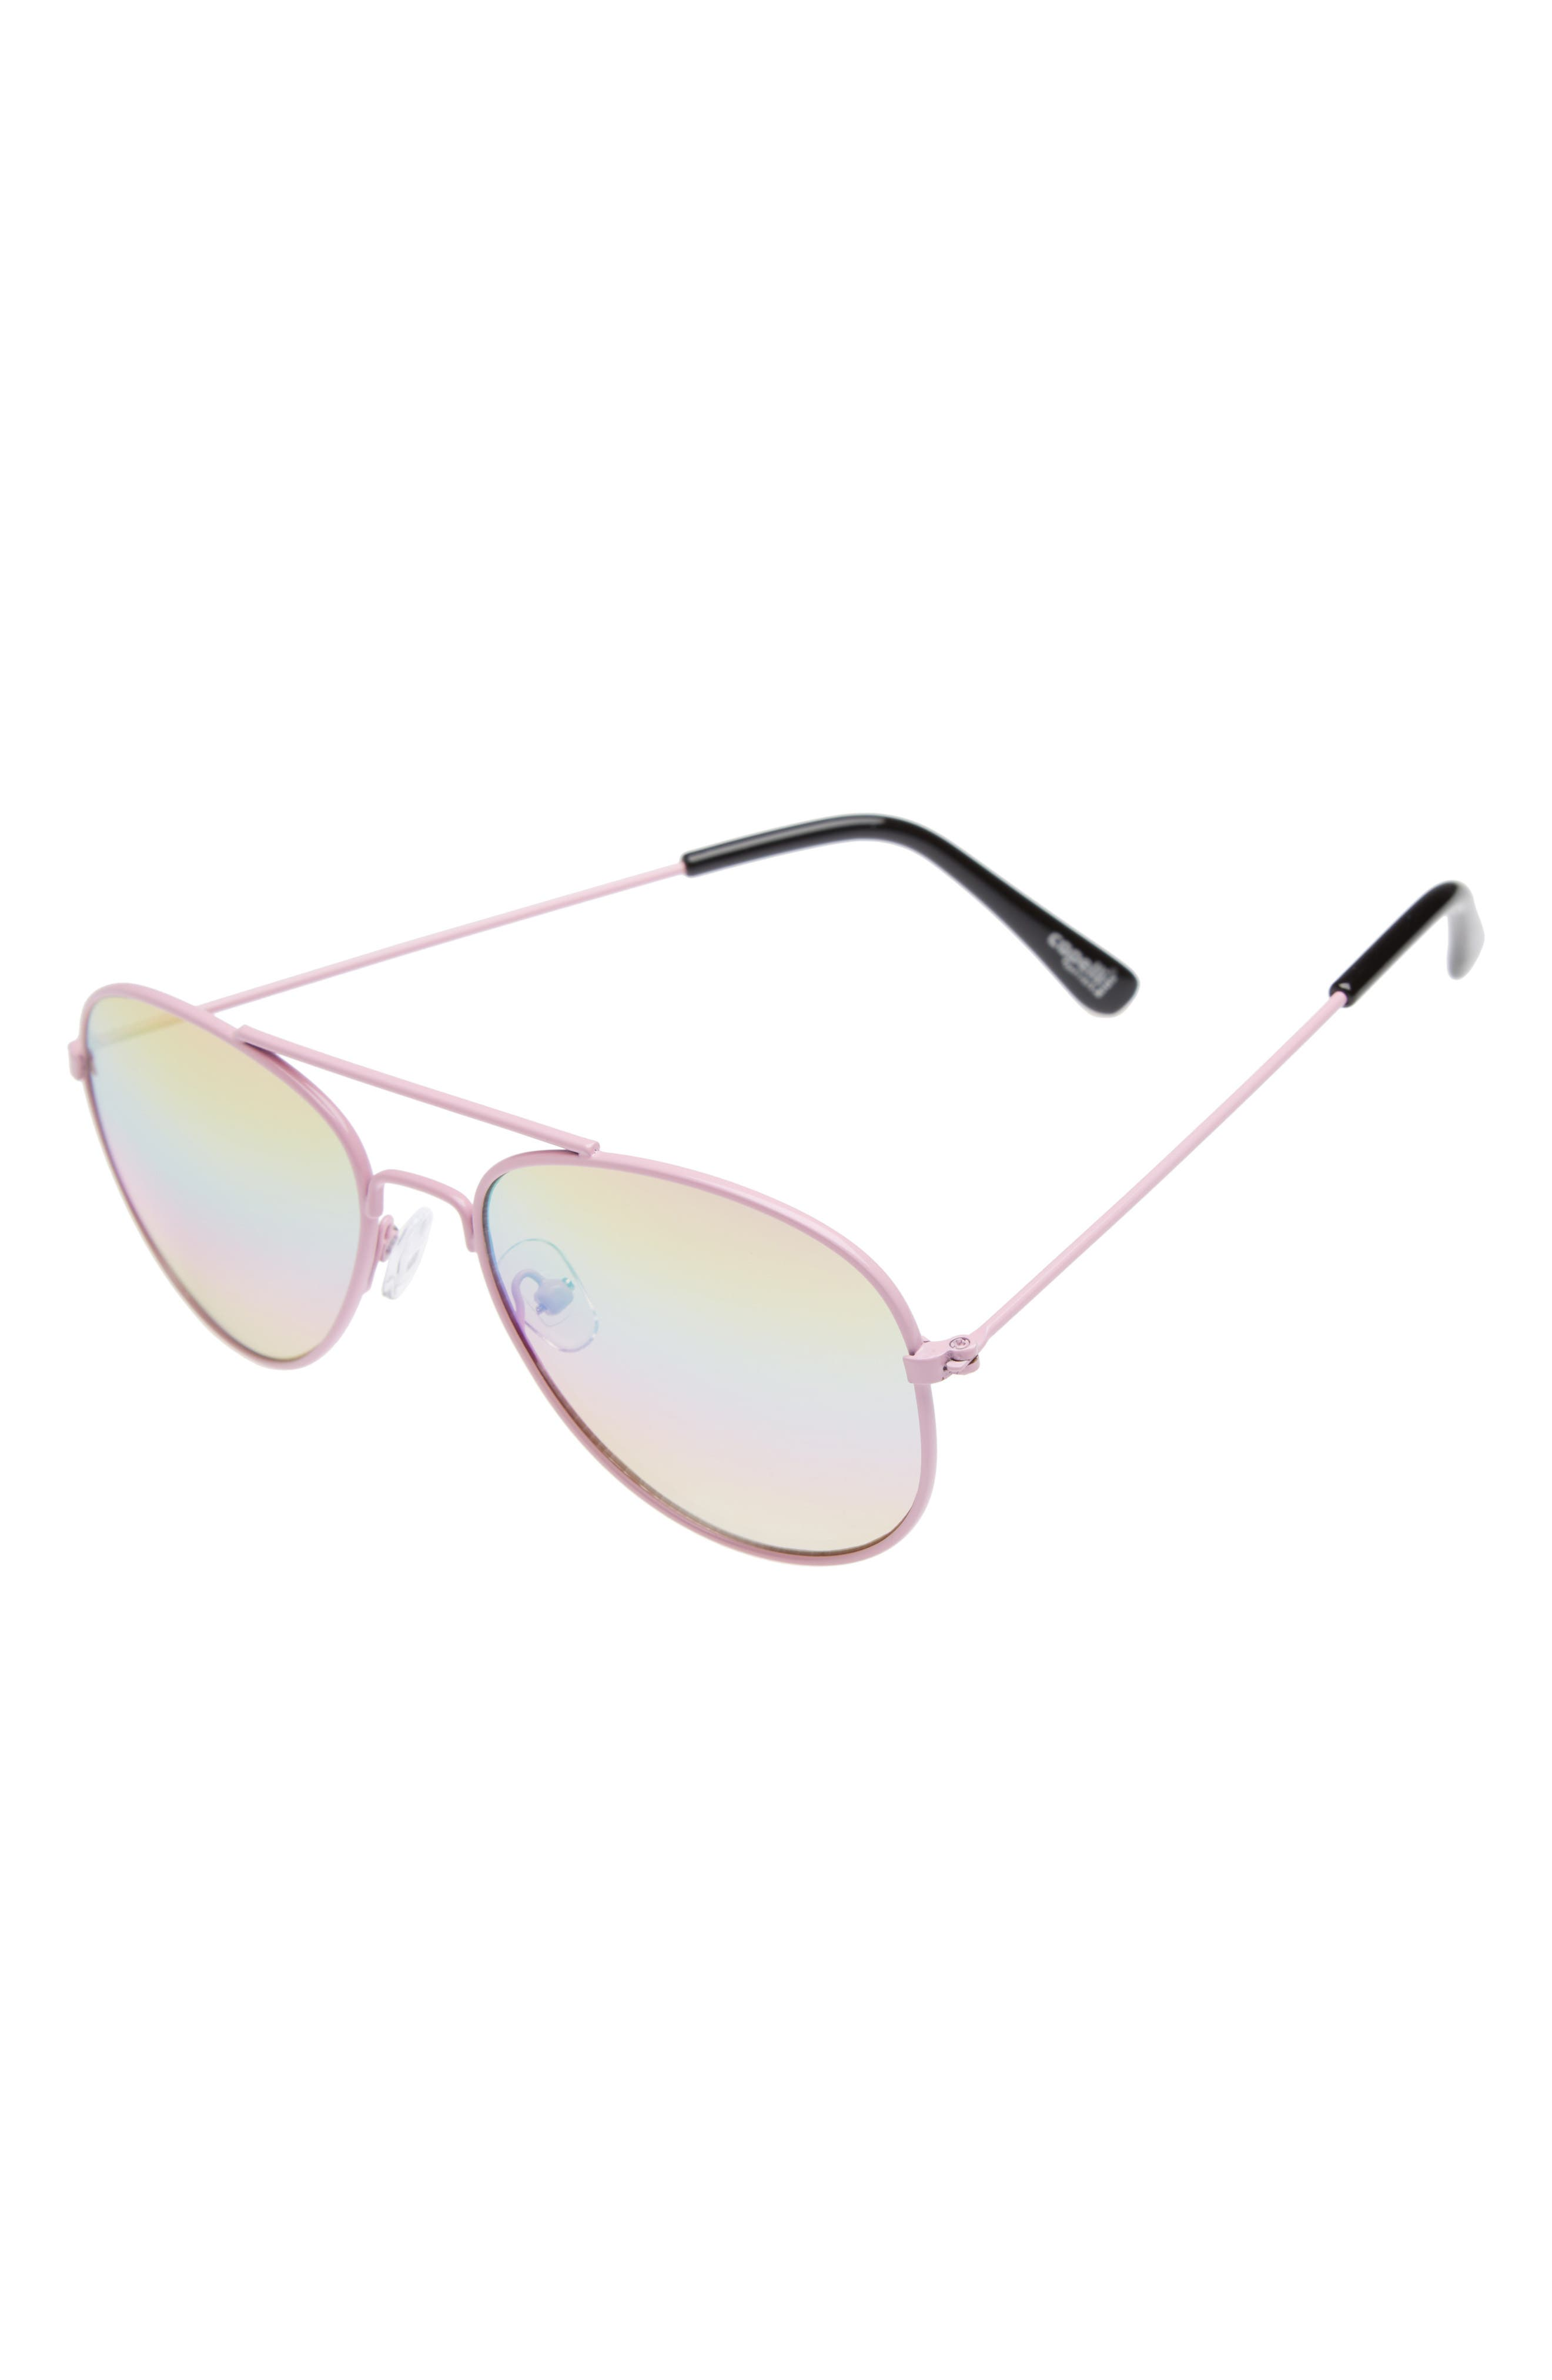 CAPELLI OF NEW YORK Aviator Sunglasses